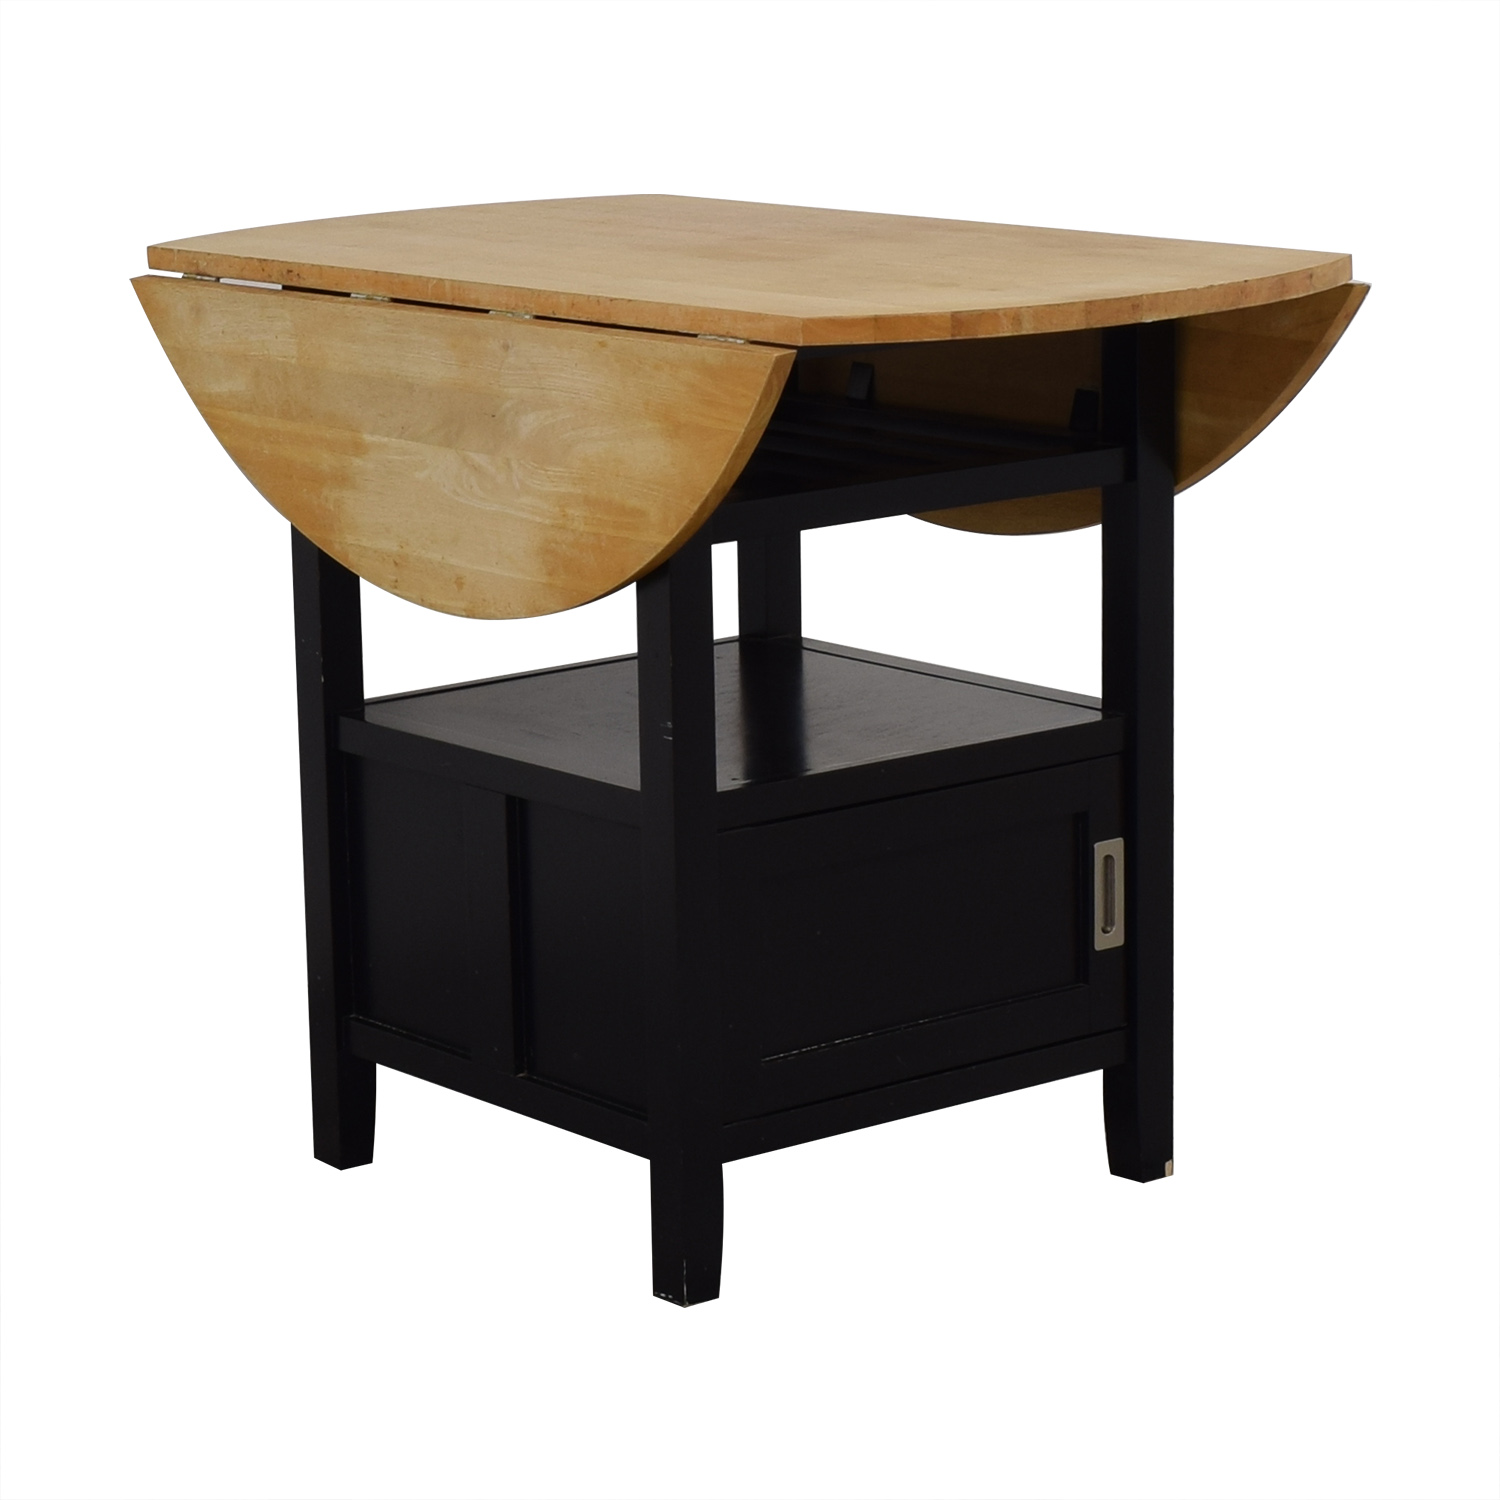 Crate & Barrel Belmont High Top Dining Table / Utility Tables